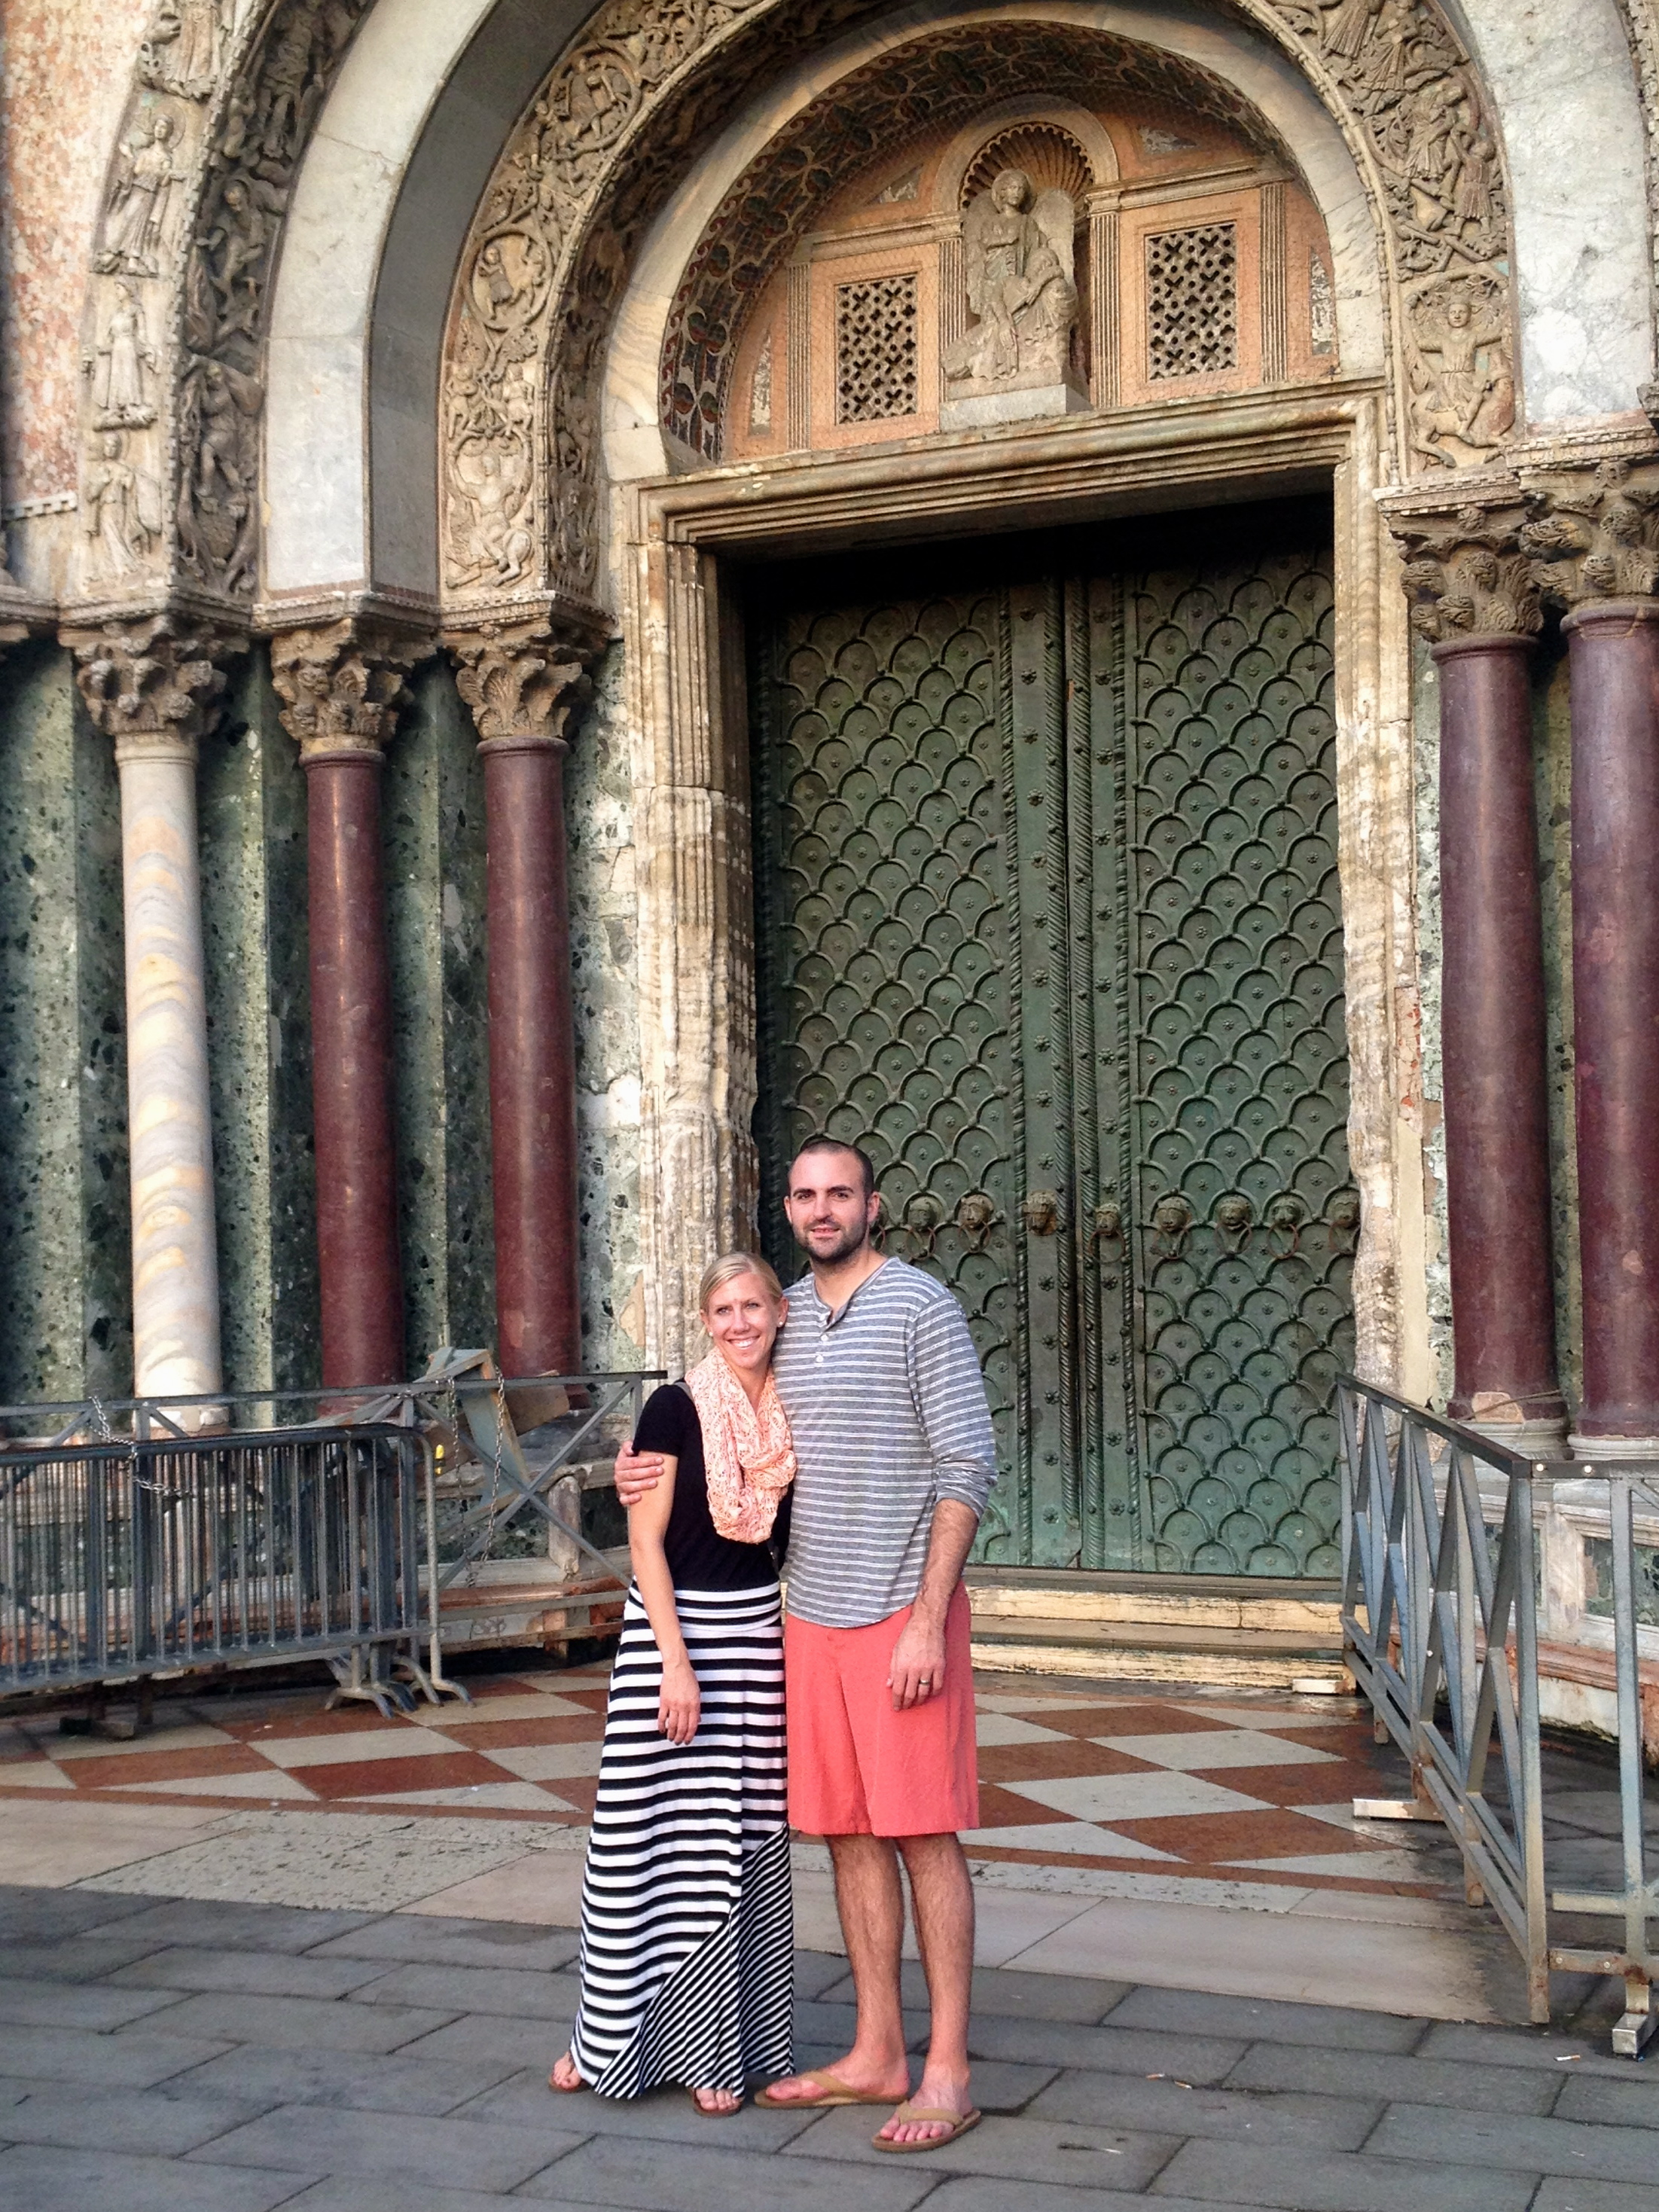 visiting St. Mark's Basilica in Venice thanks to a free stopover on Lufthansa with United miles